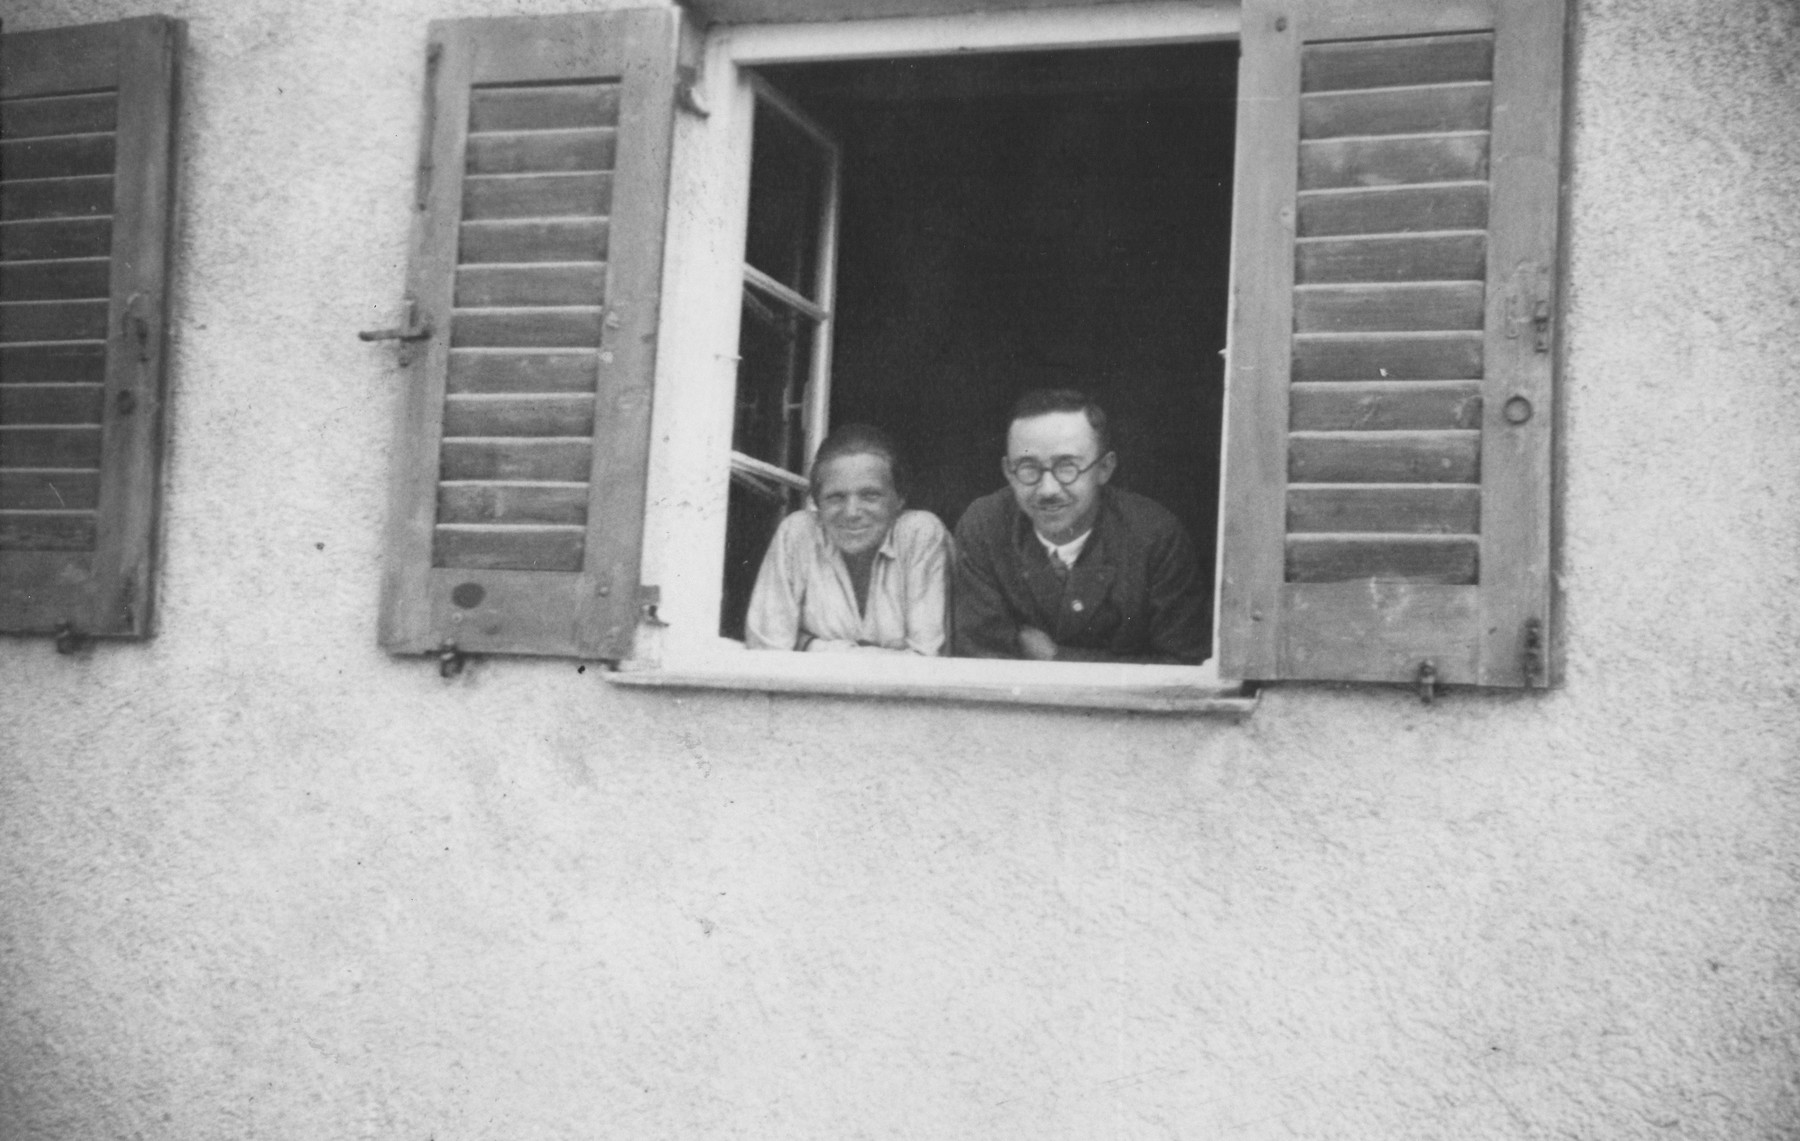 Heinrich and Margarete Himmler look out the window of their home on their chicken farm in Waldtrudering near Munich.